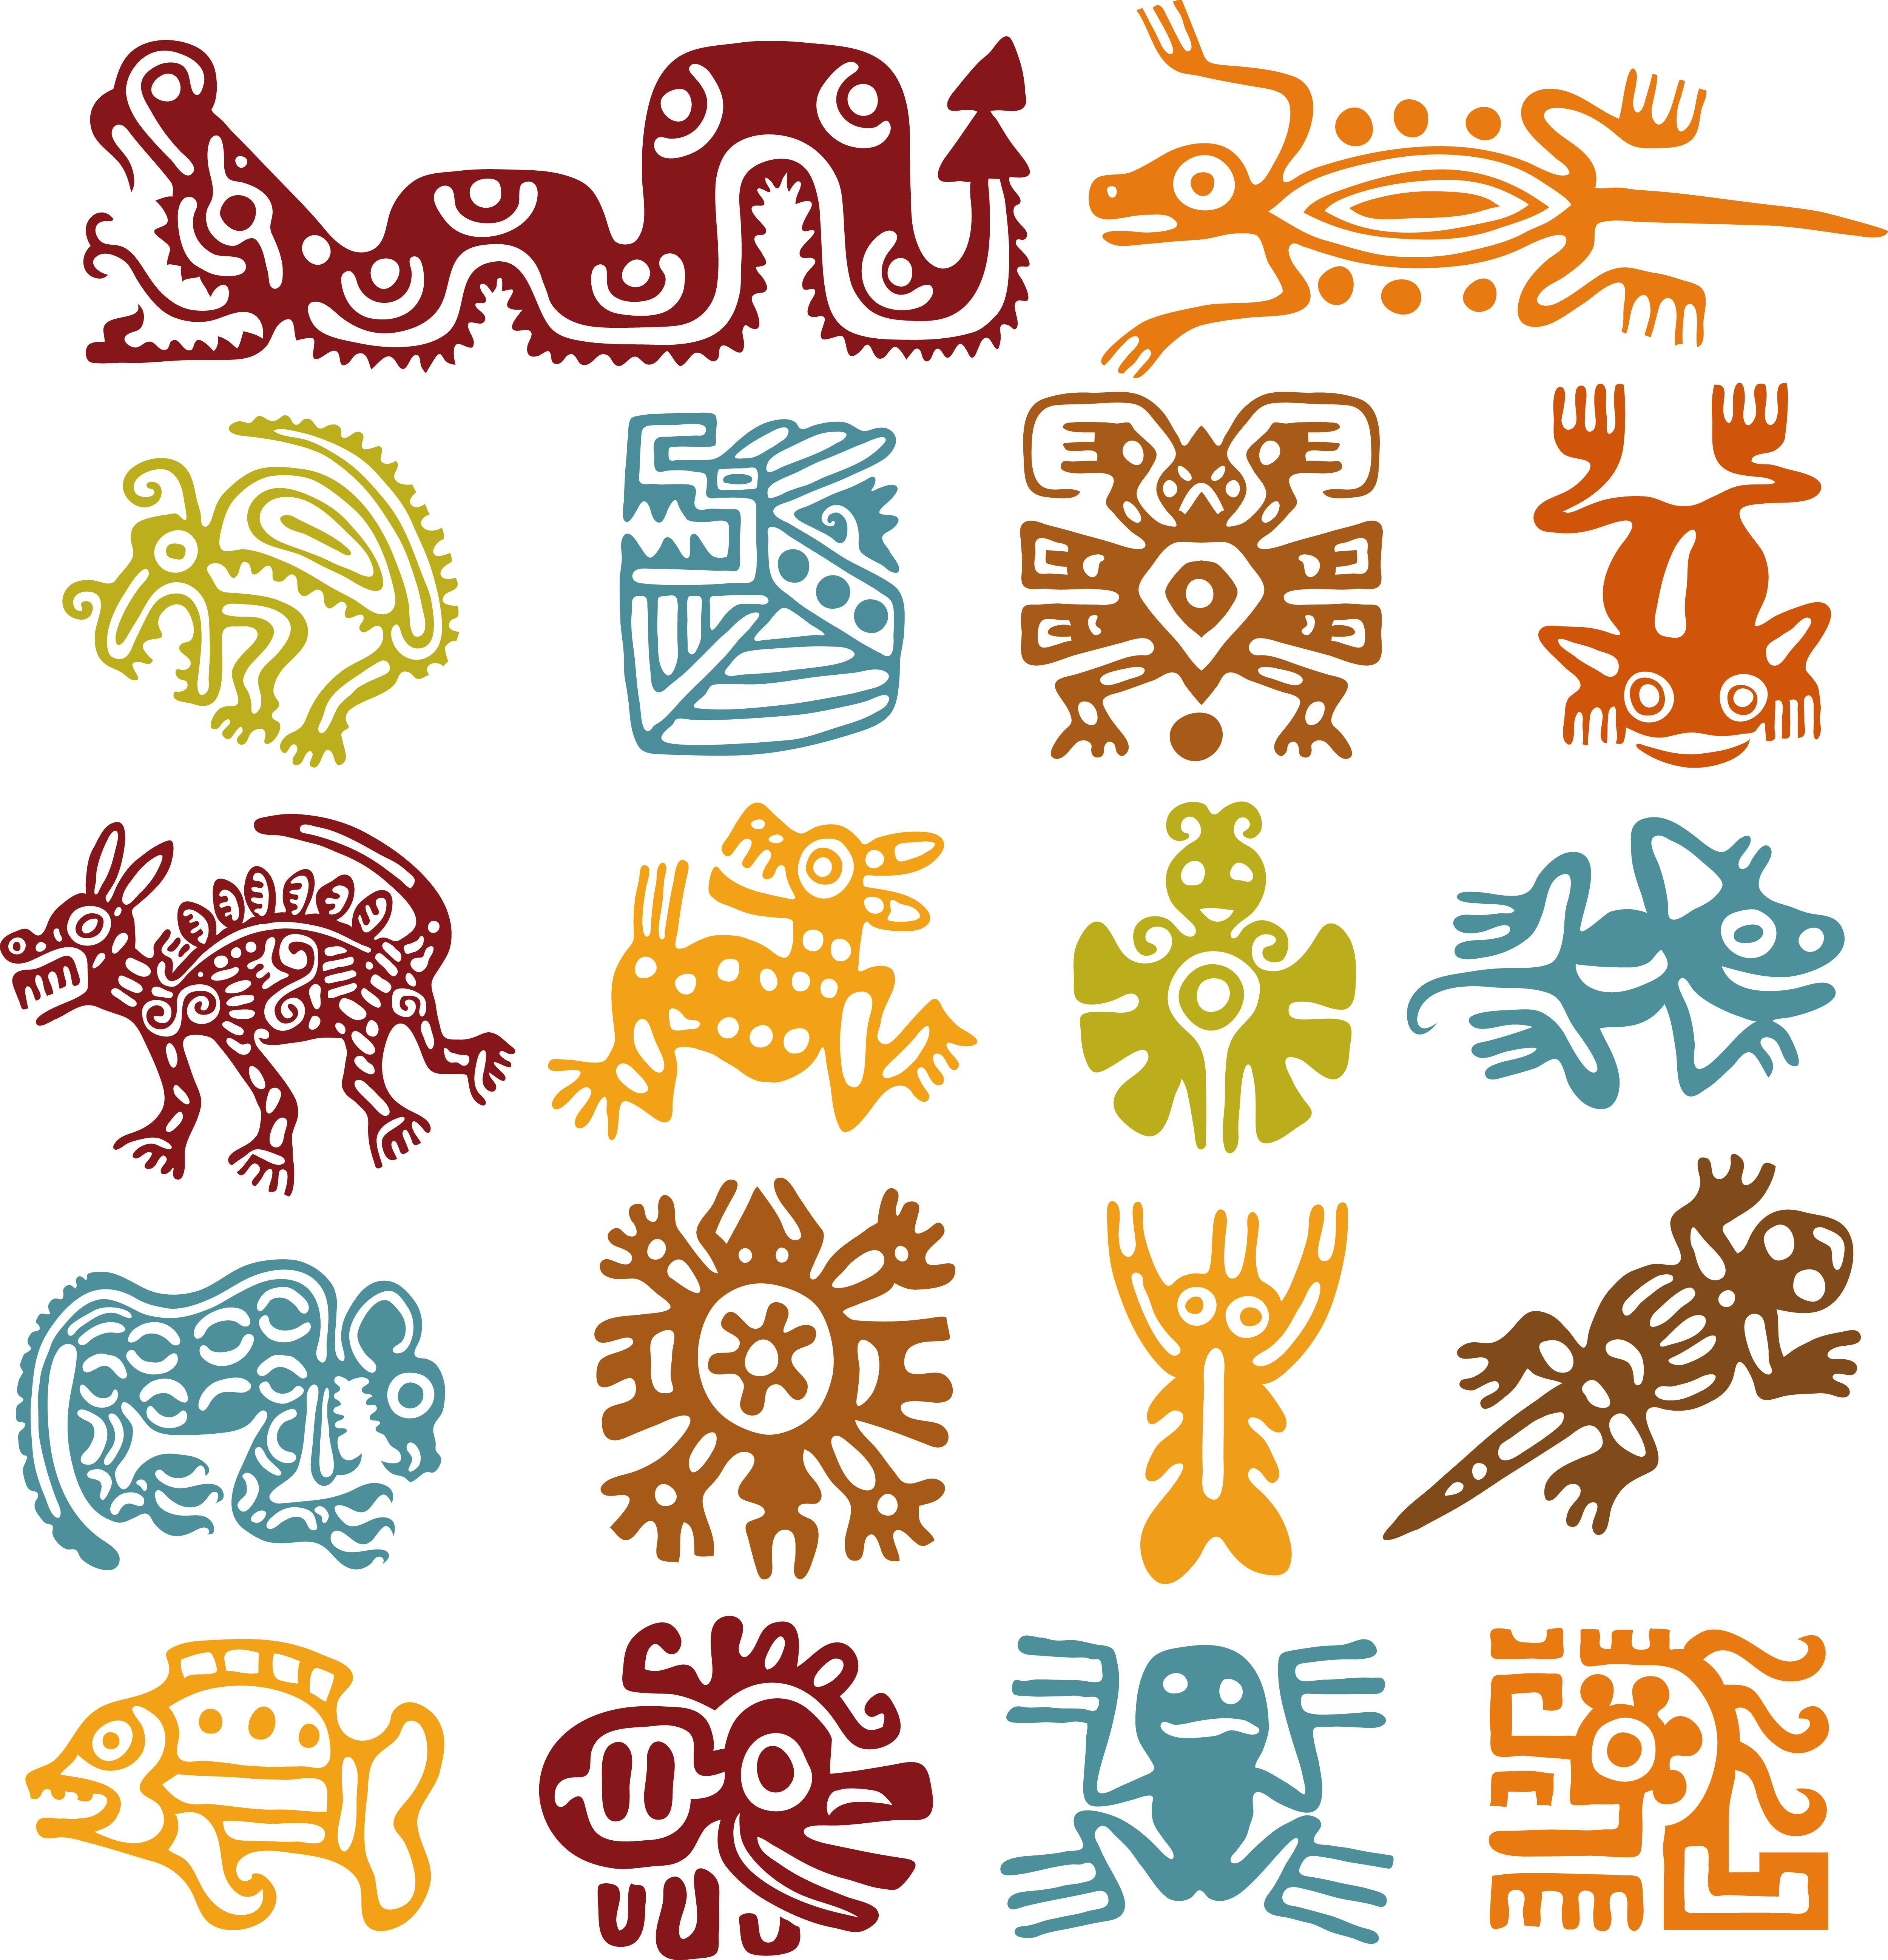 Pin by inna b eva on colors patterns shapes pinterest color illustration of set mexican symbols vector art clipart and stock vectors biocorpaavc Gallery